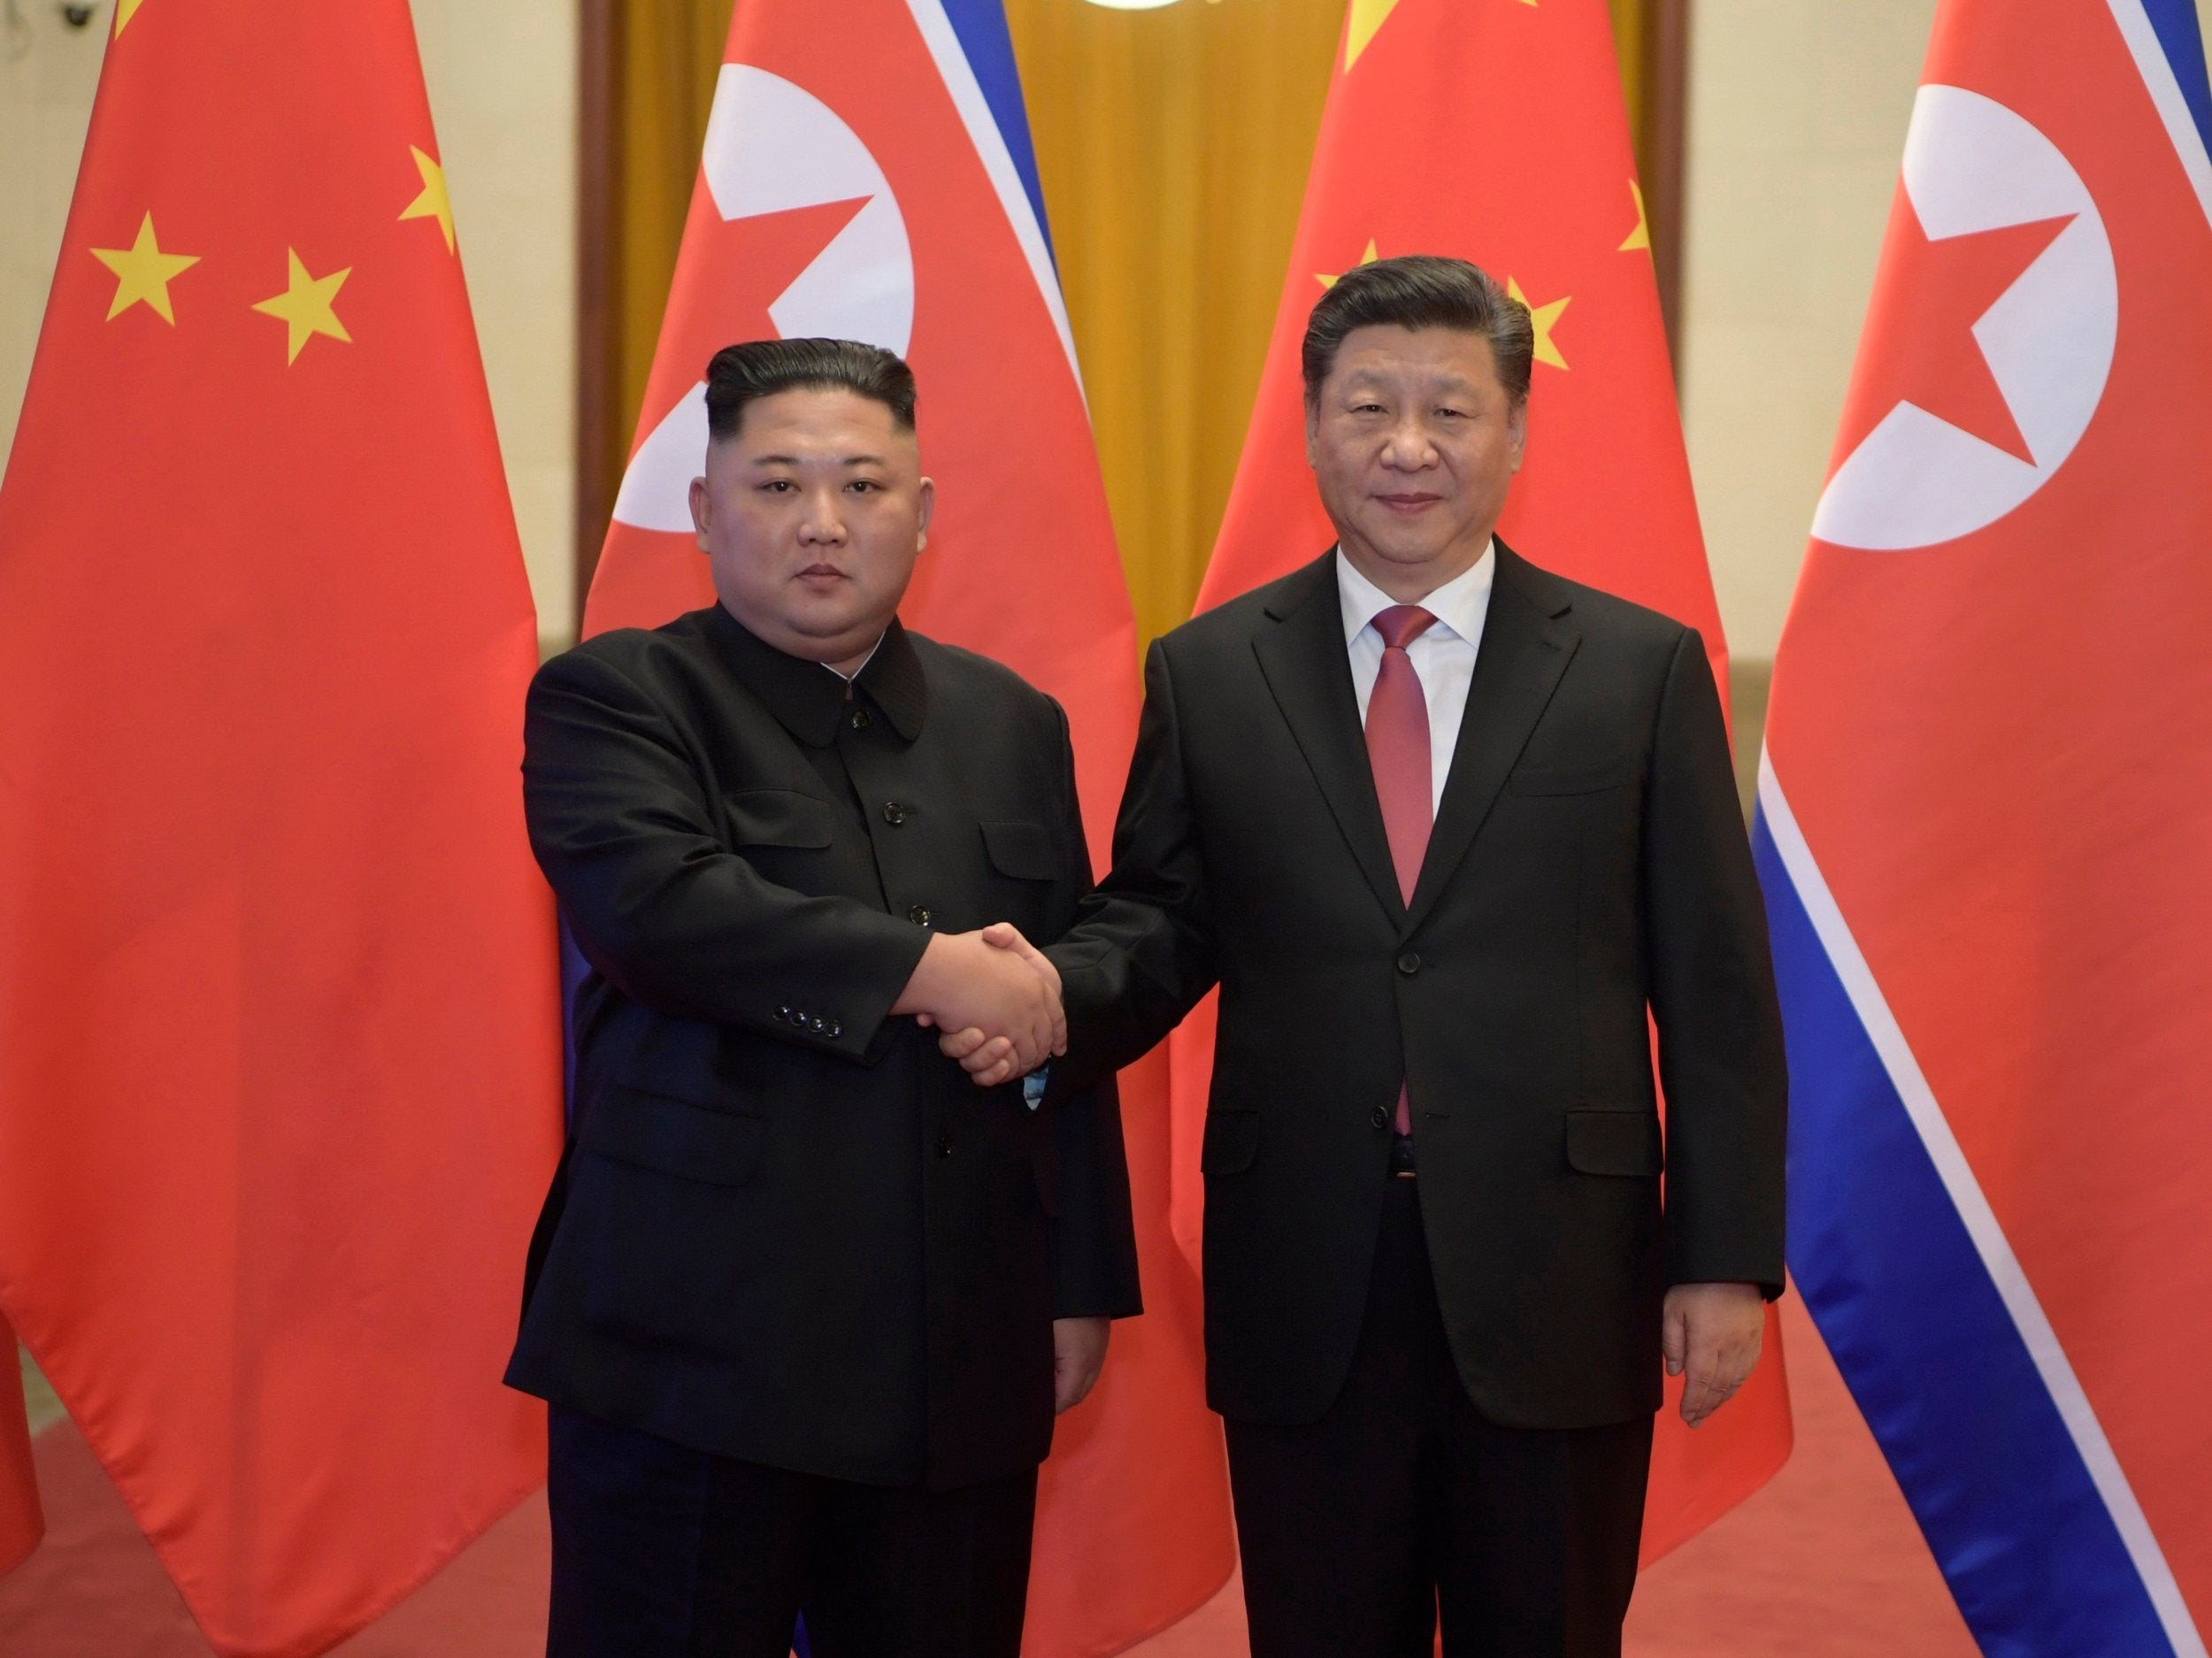 North Korea: Second Trump-Kim summit could be 'imminent' as Xi Jinping accepts offer to visit Pyongyang